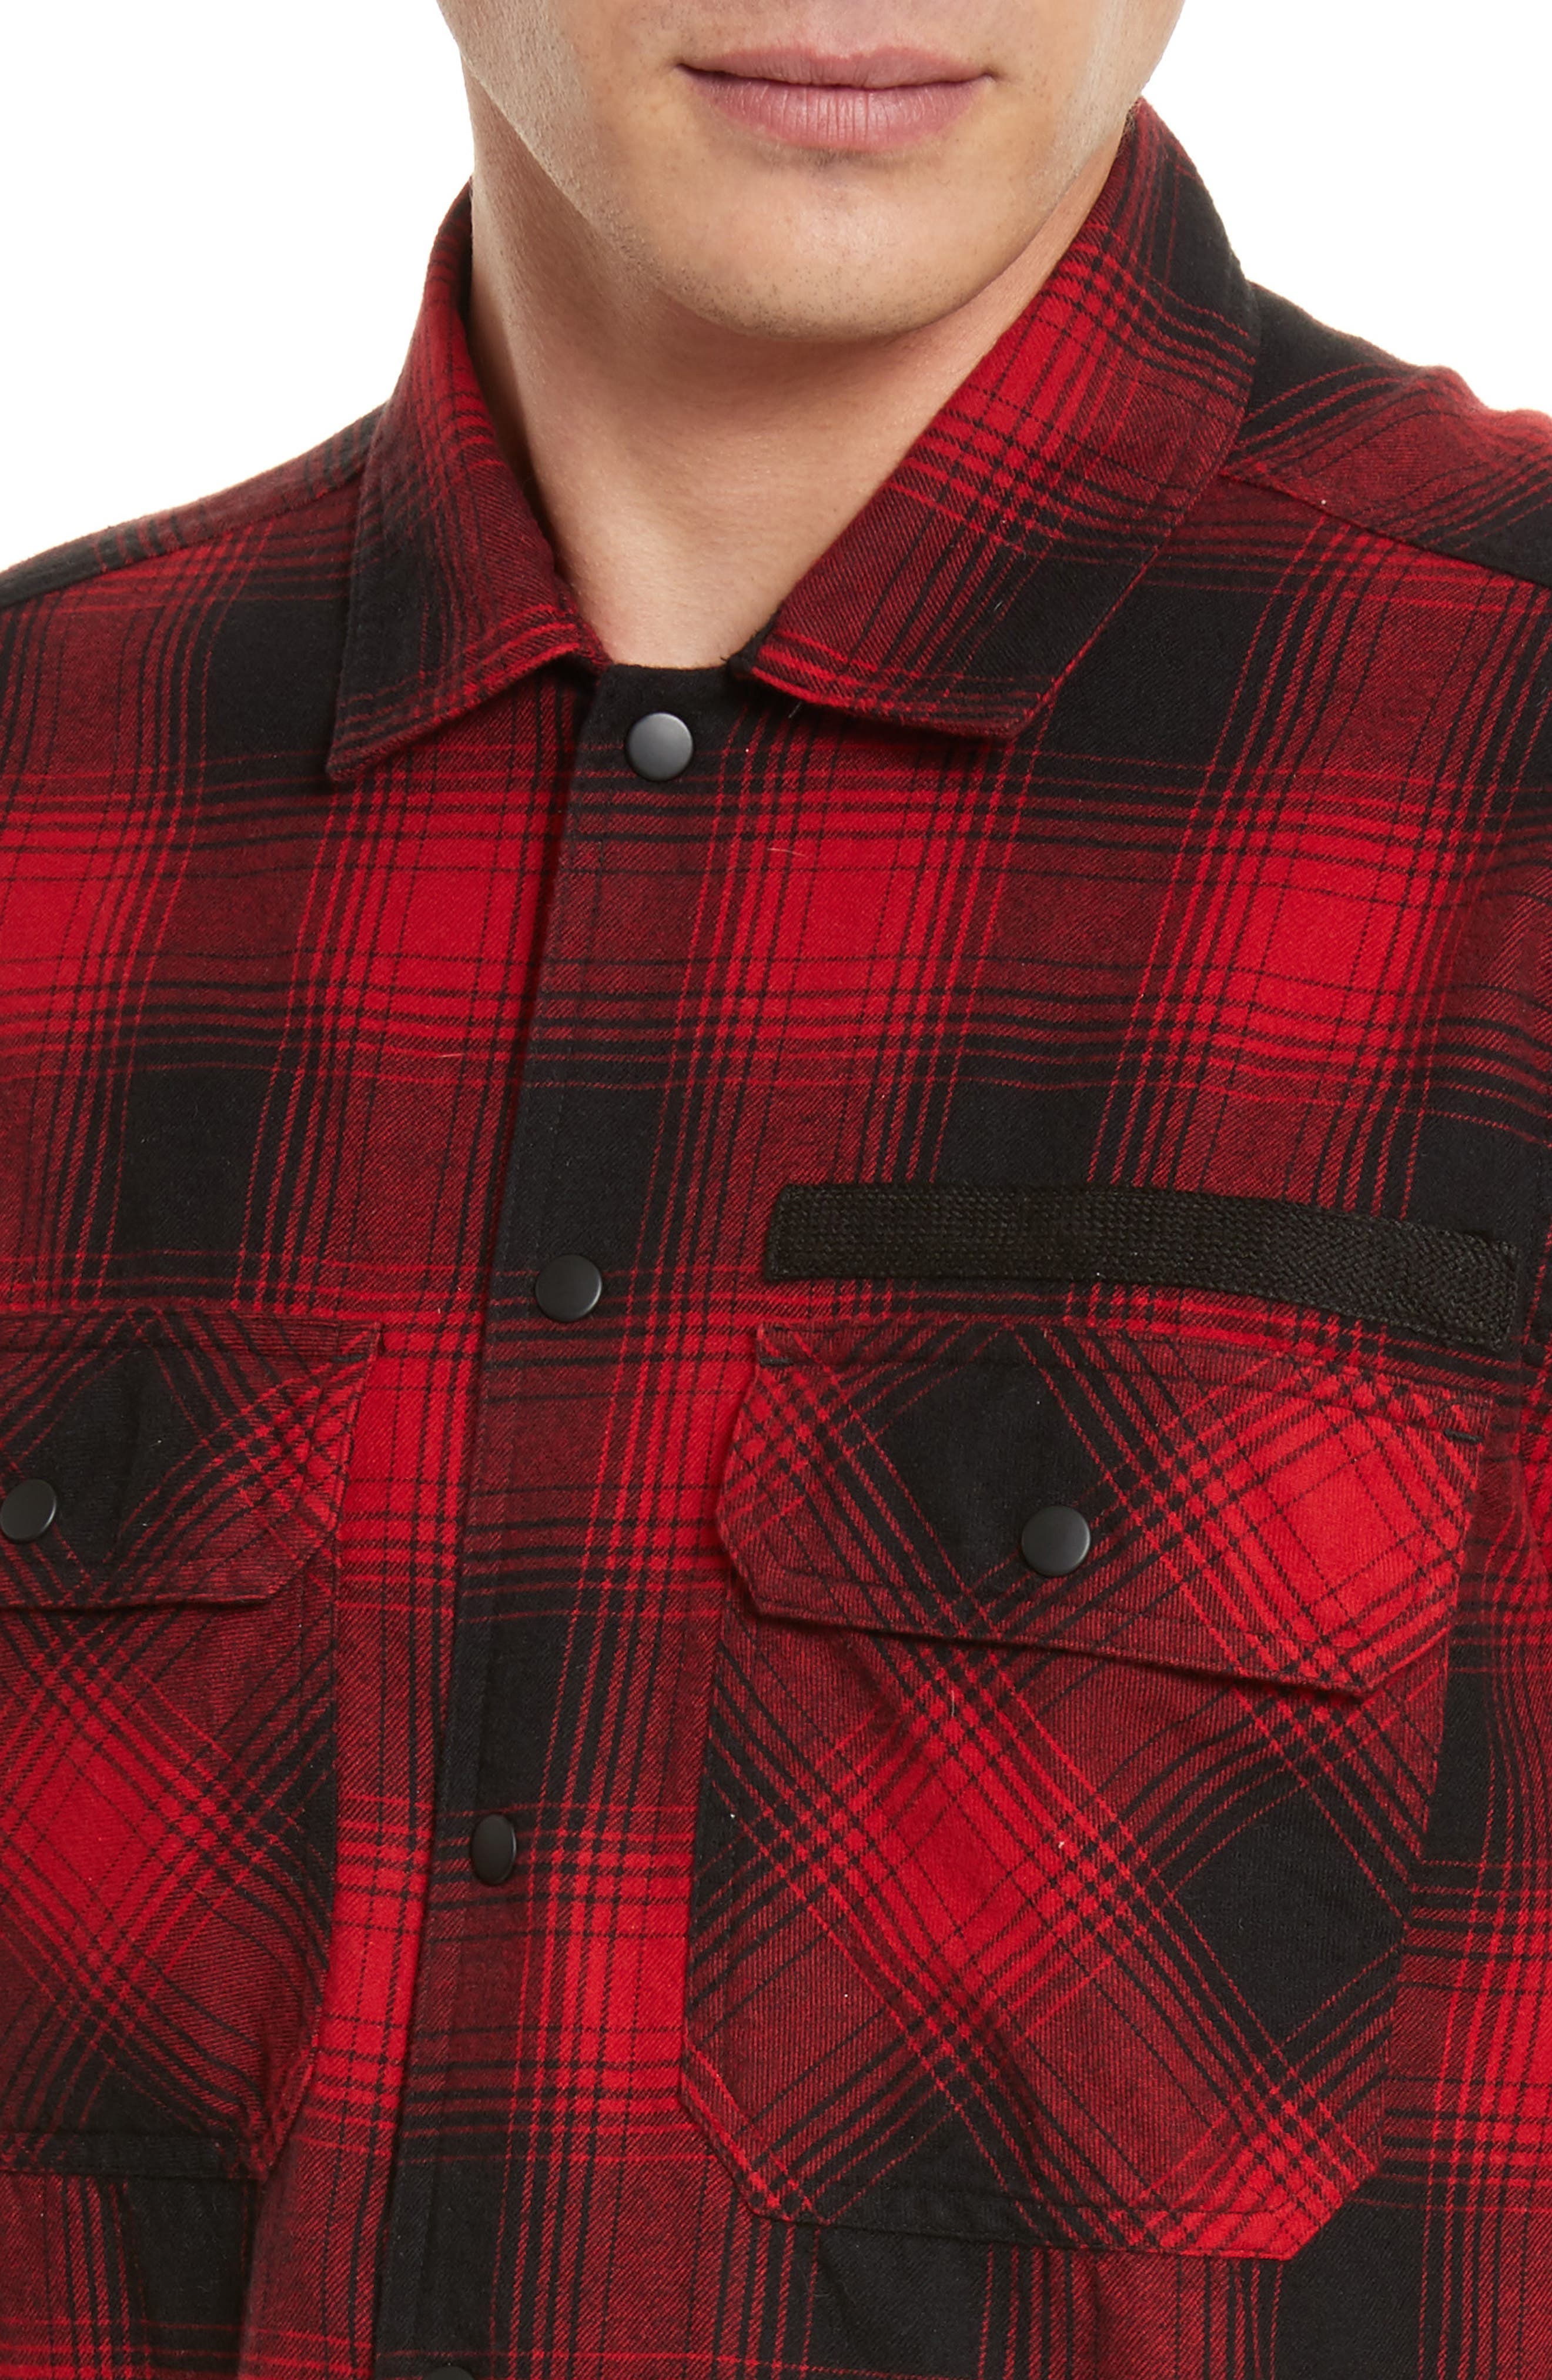 Plaid Flannel Shirt,                             Alternate thumbnail 4, color,                             Red Plaid